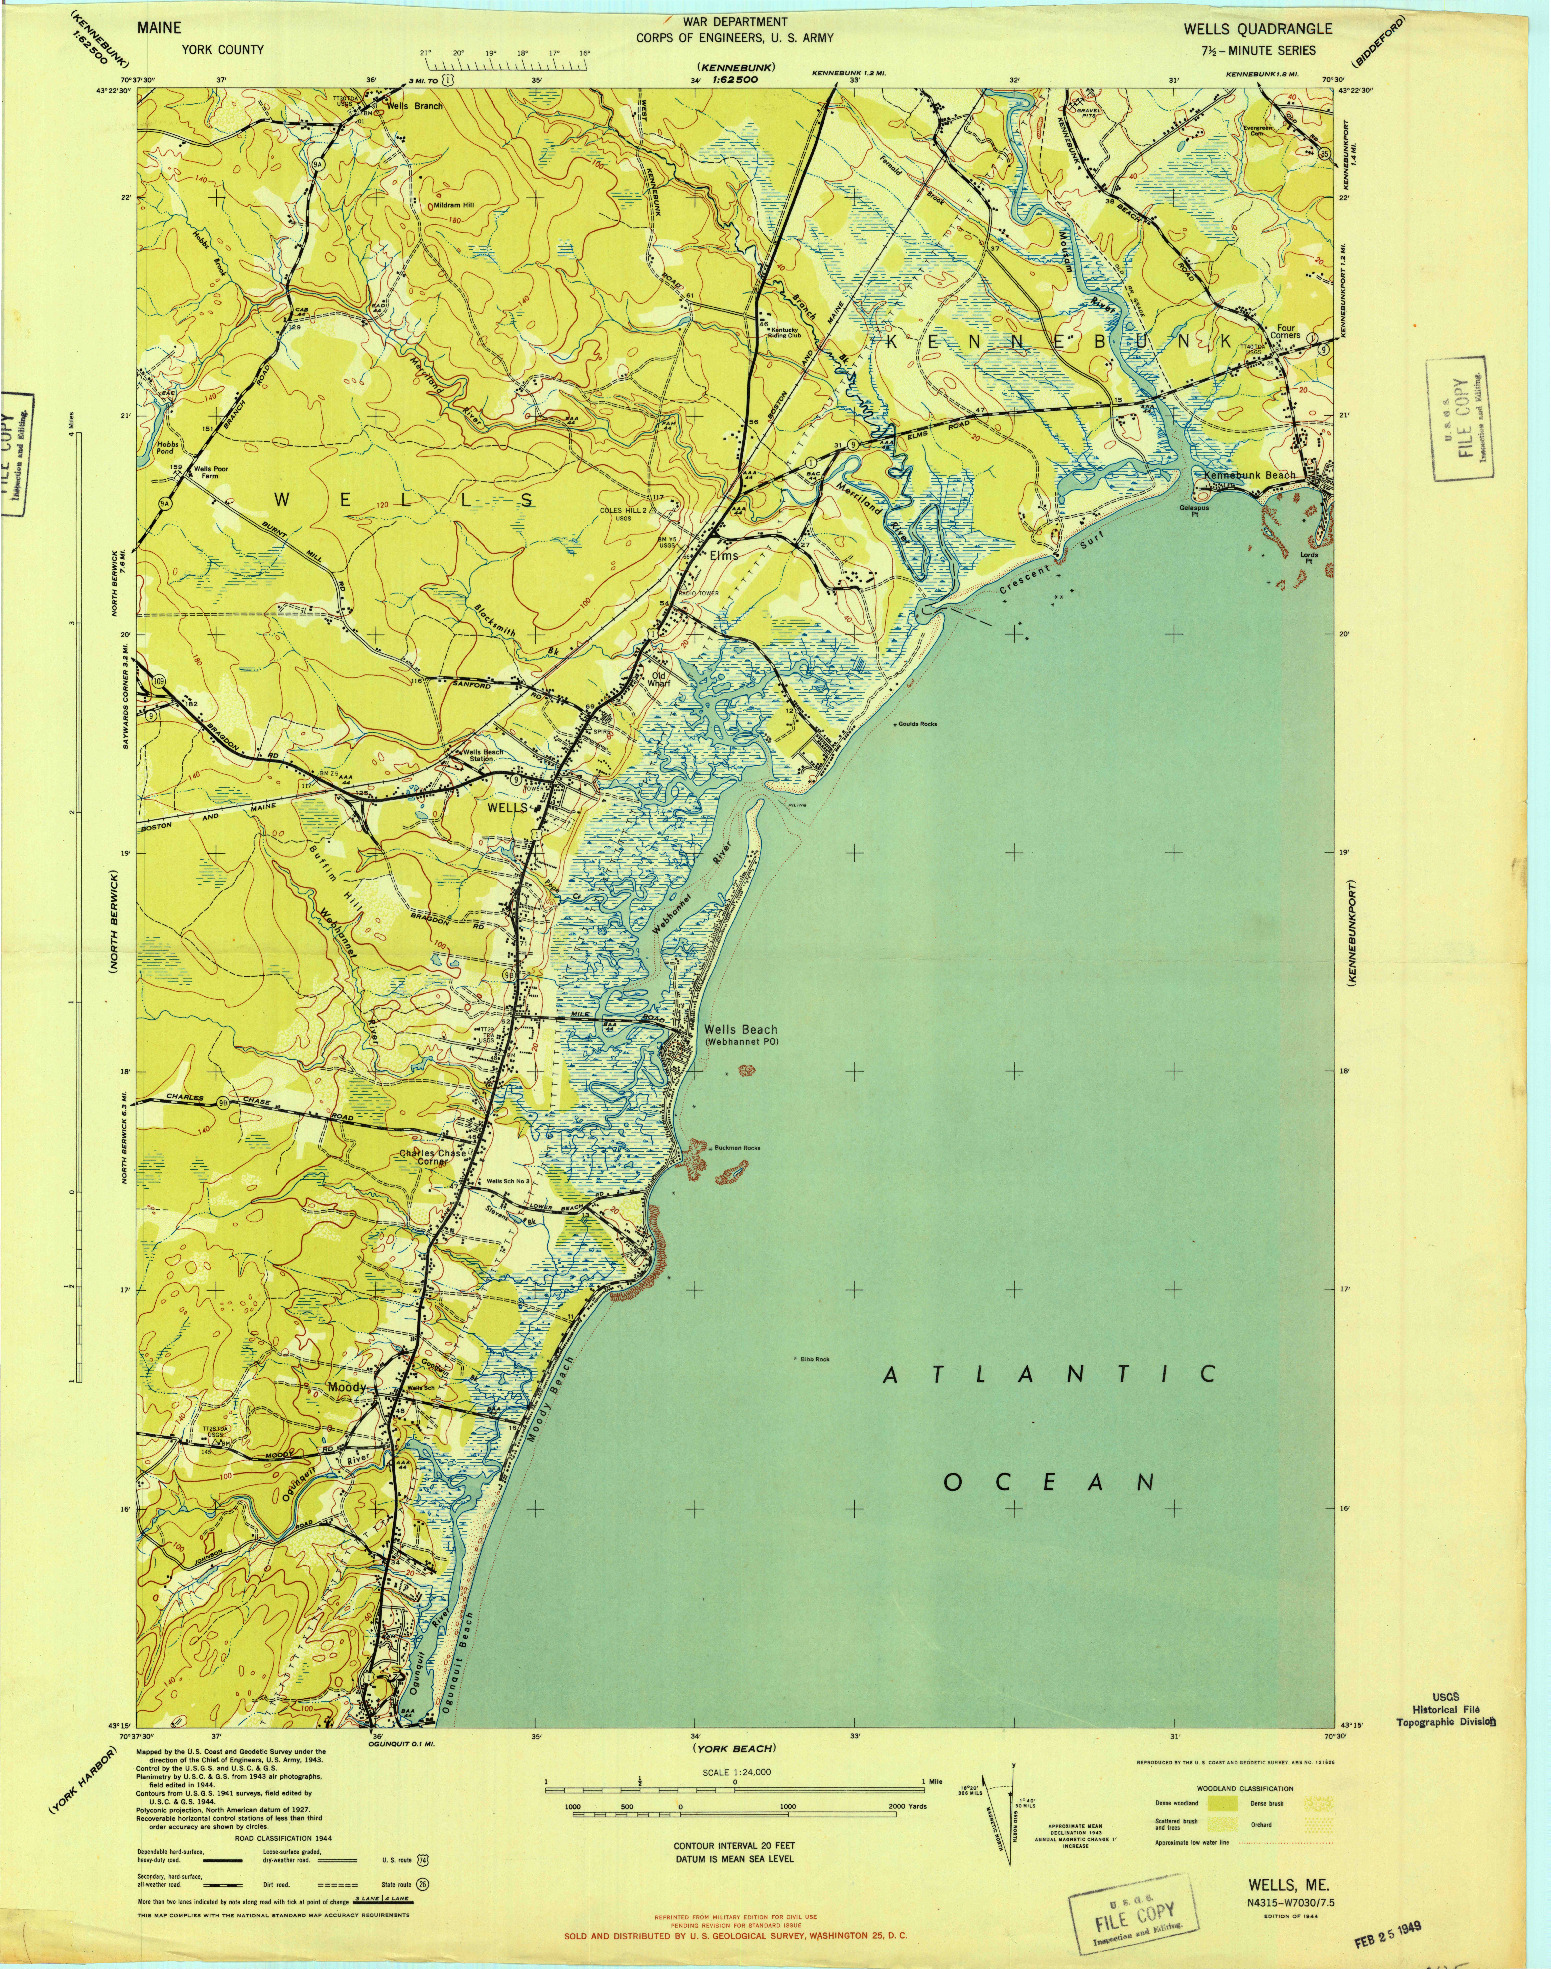 USGS 1:24000-SCALE QUADRANGLE FOR WELLS, ME 1944 on map of danville nh, map of south hampton nh, map of deerfield nh, map of new castle nh, map of newton ma, map of hudson nh, map of rochester nh, map of laconia nh, map of york maine area, map of york beach maine, map of southern maine coast, map of springfield ma, map of rollinsford nh, map of strafford nh, map of dover nh, map of new durham nh, map of gilford nh, map of stewartstown nh, map of epping nh, map of salisbury ma,